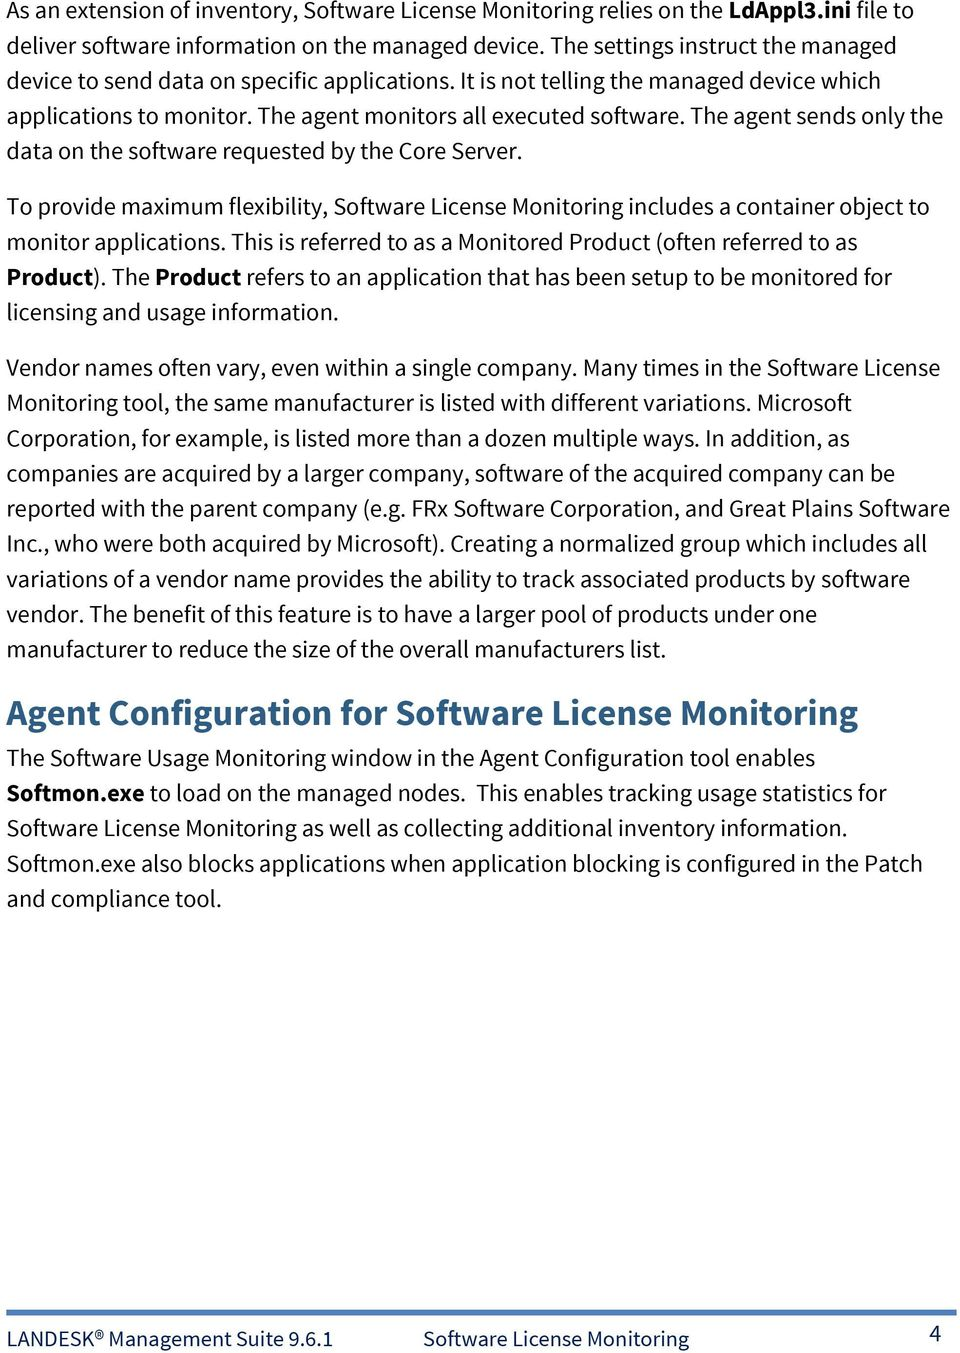 The agent sends only the data on the software requested by the Core Server. To provide maximum flexibility, Software License Monitoring includes a container object to monitor applications.